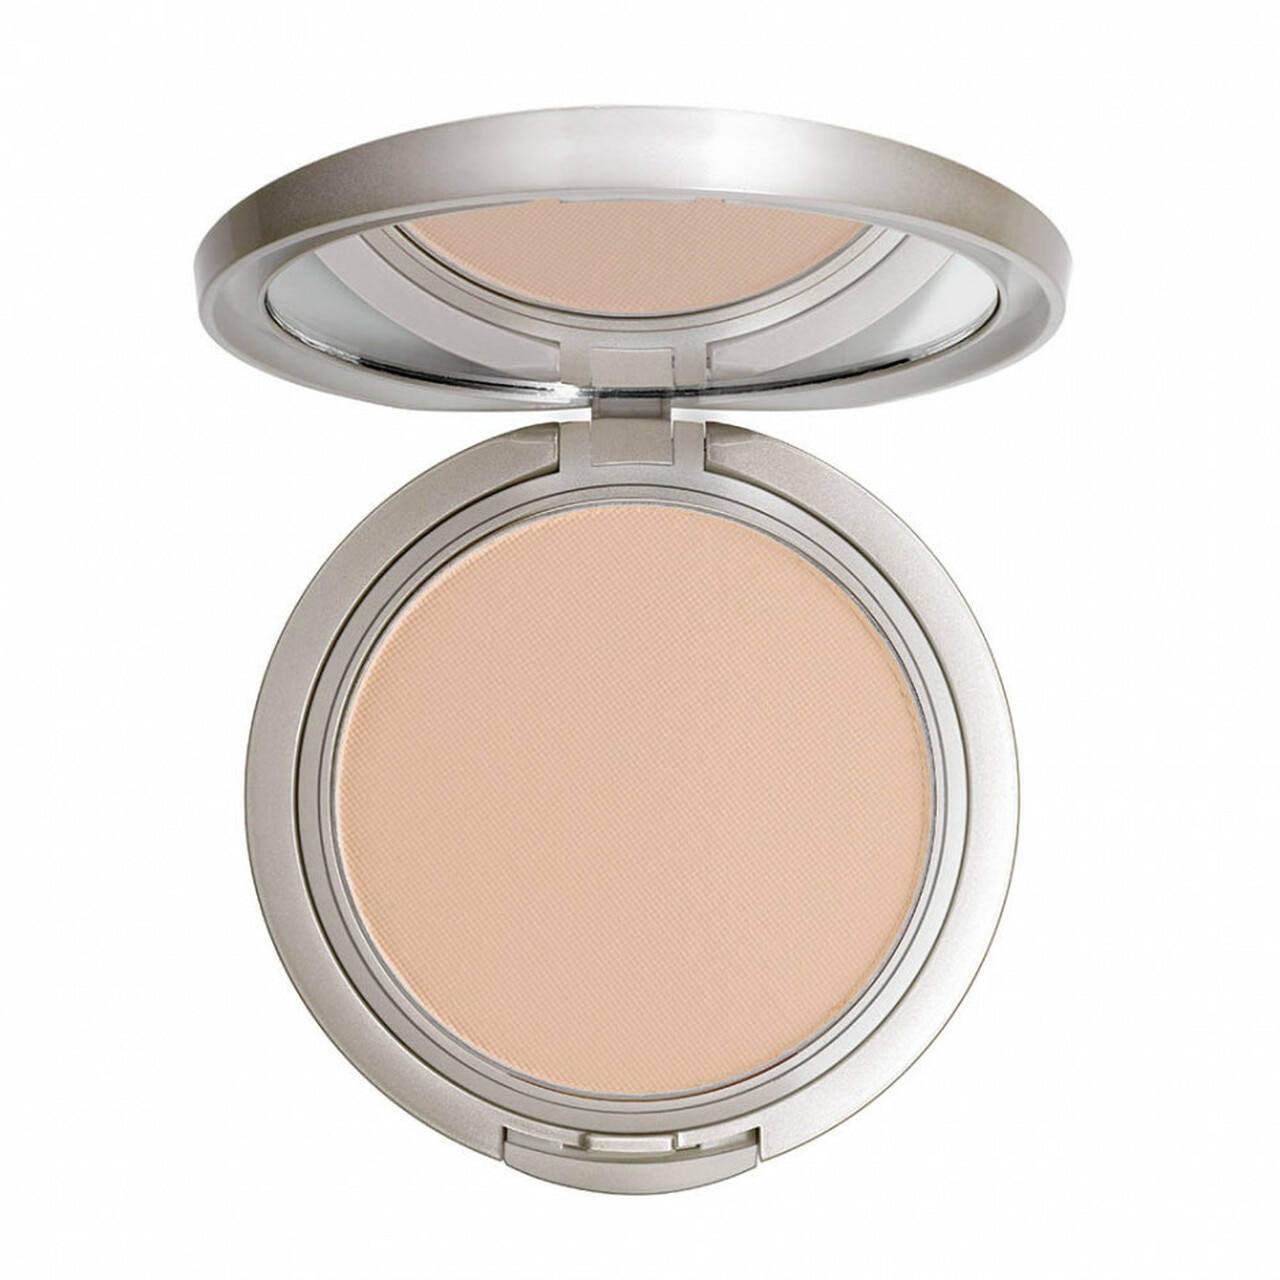 Hydra mineral compact foundation 60